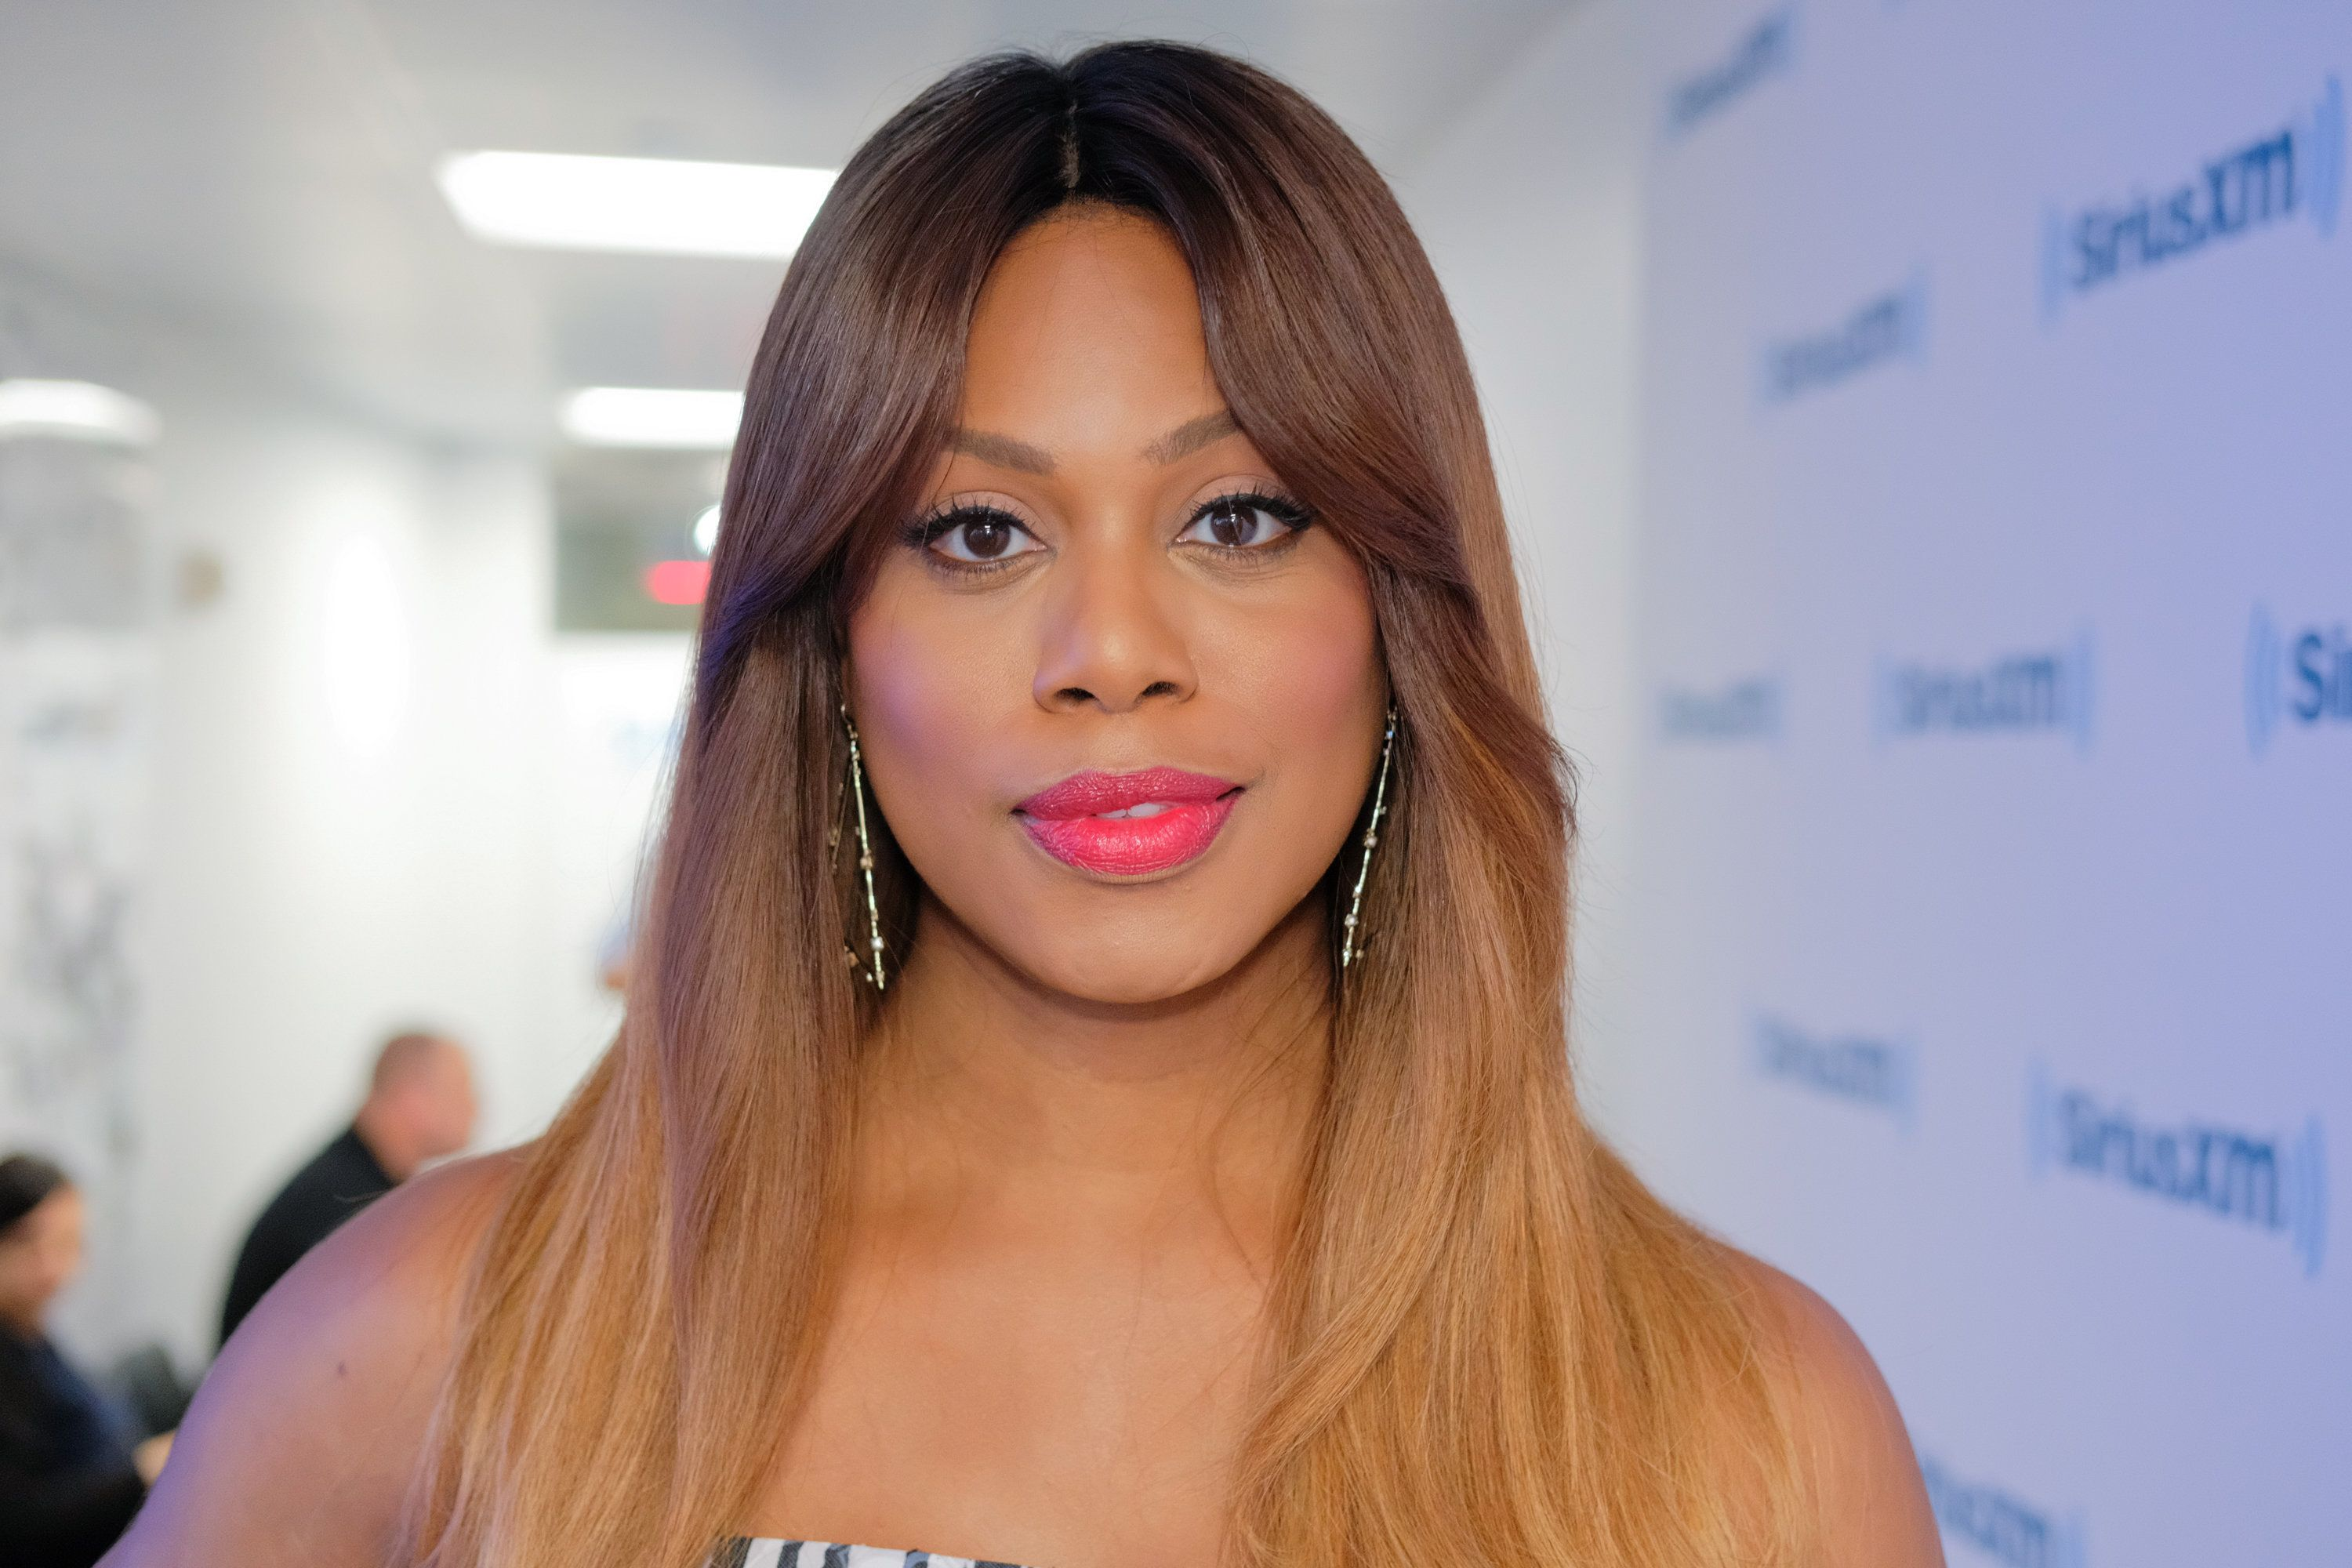 NEW YORK, NY - JUNE 14:  Actress Laverne Cox visits SiriusXM Studios on June 14, 2017 in New York City.  (Photo by Matthew Eisman/Getty Images)